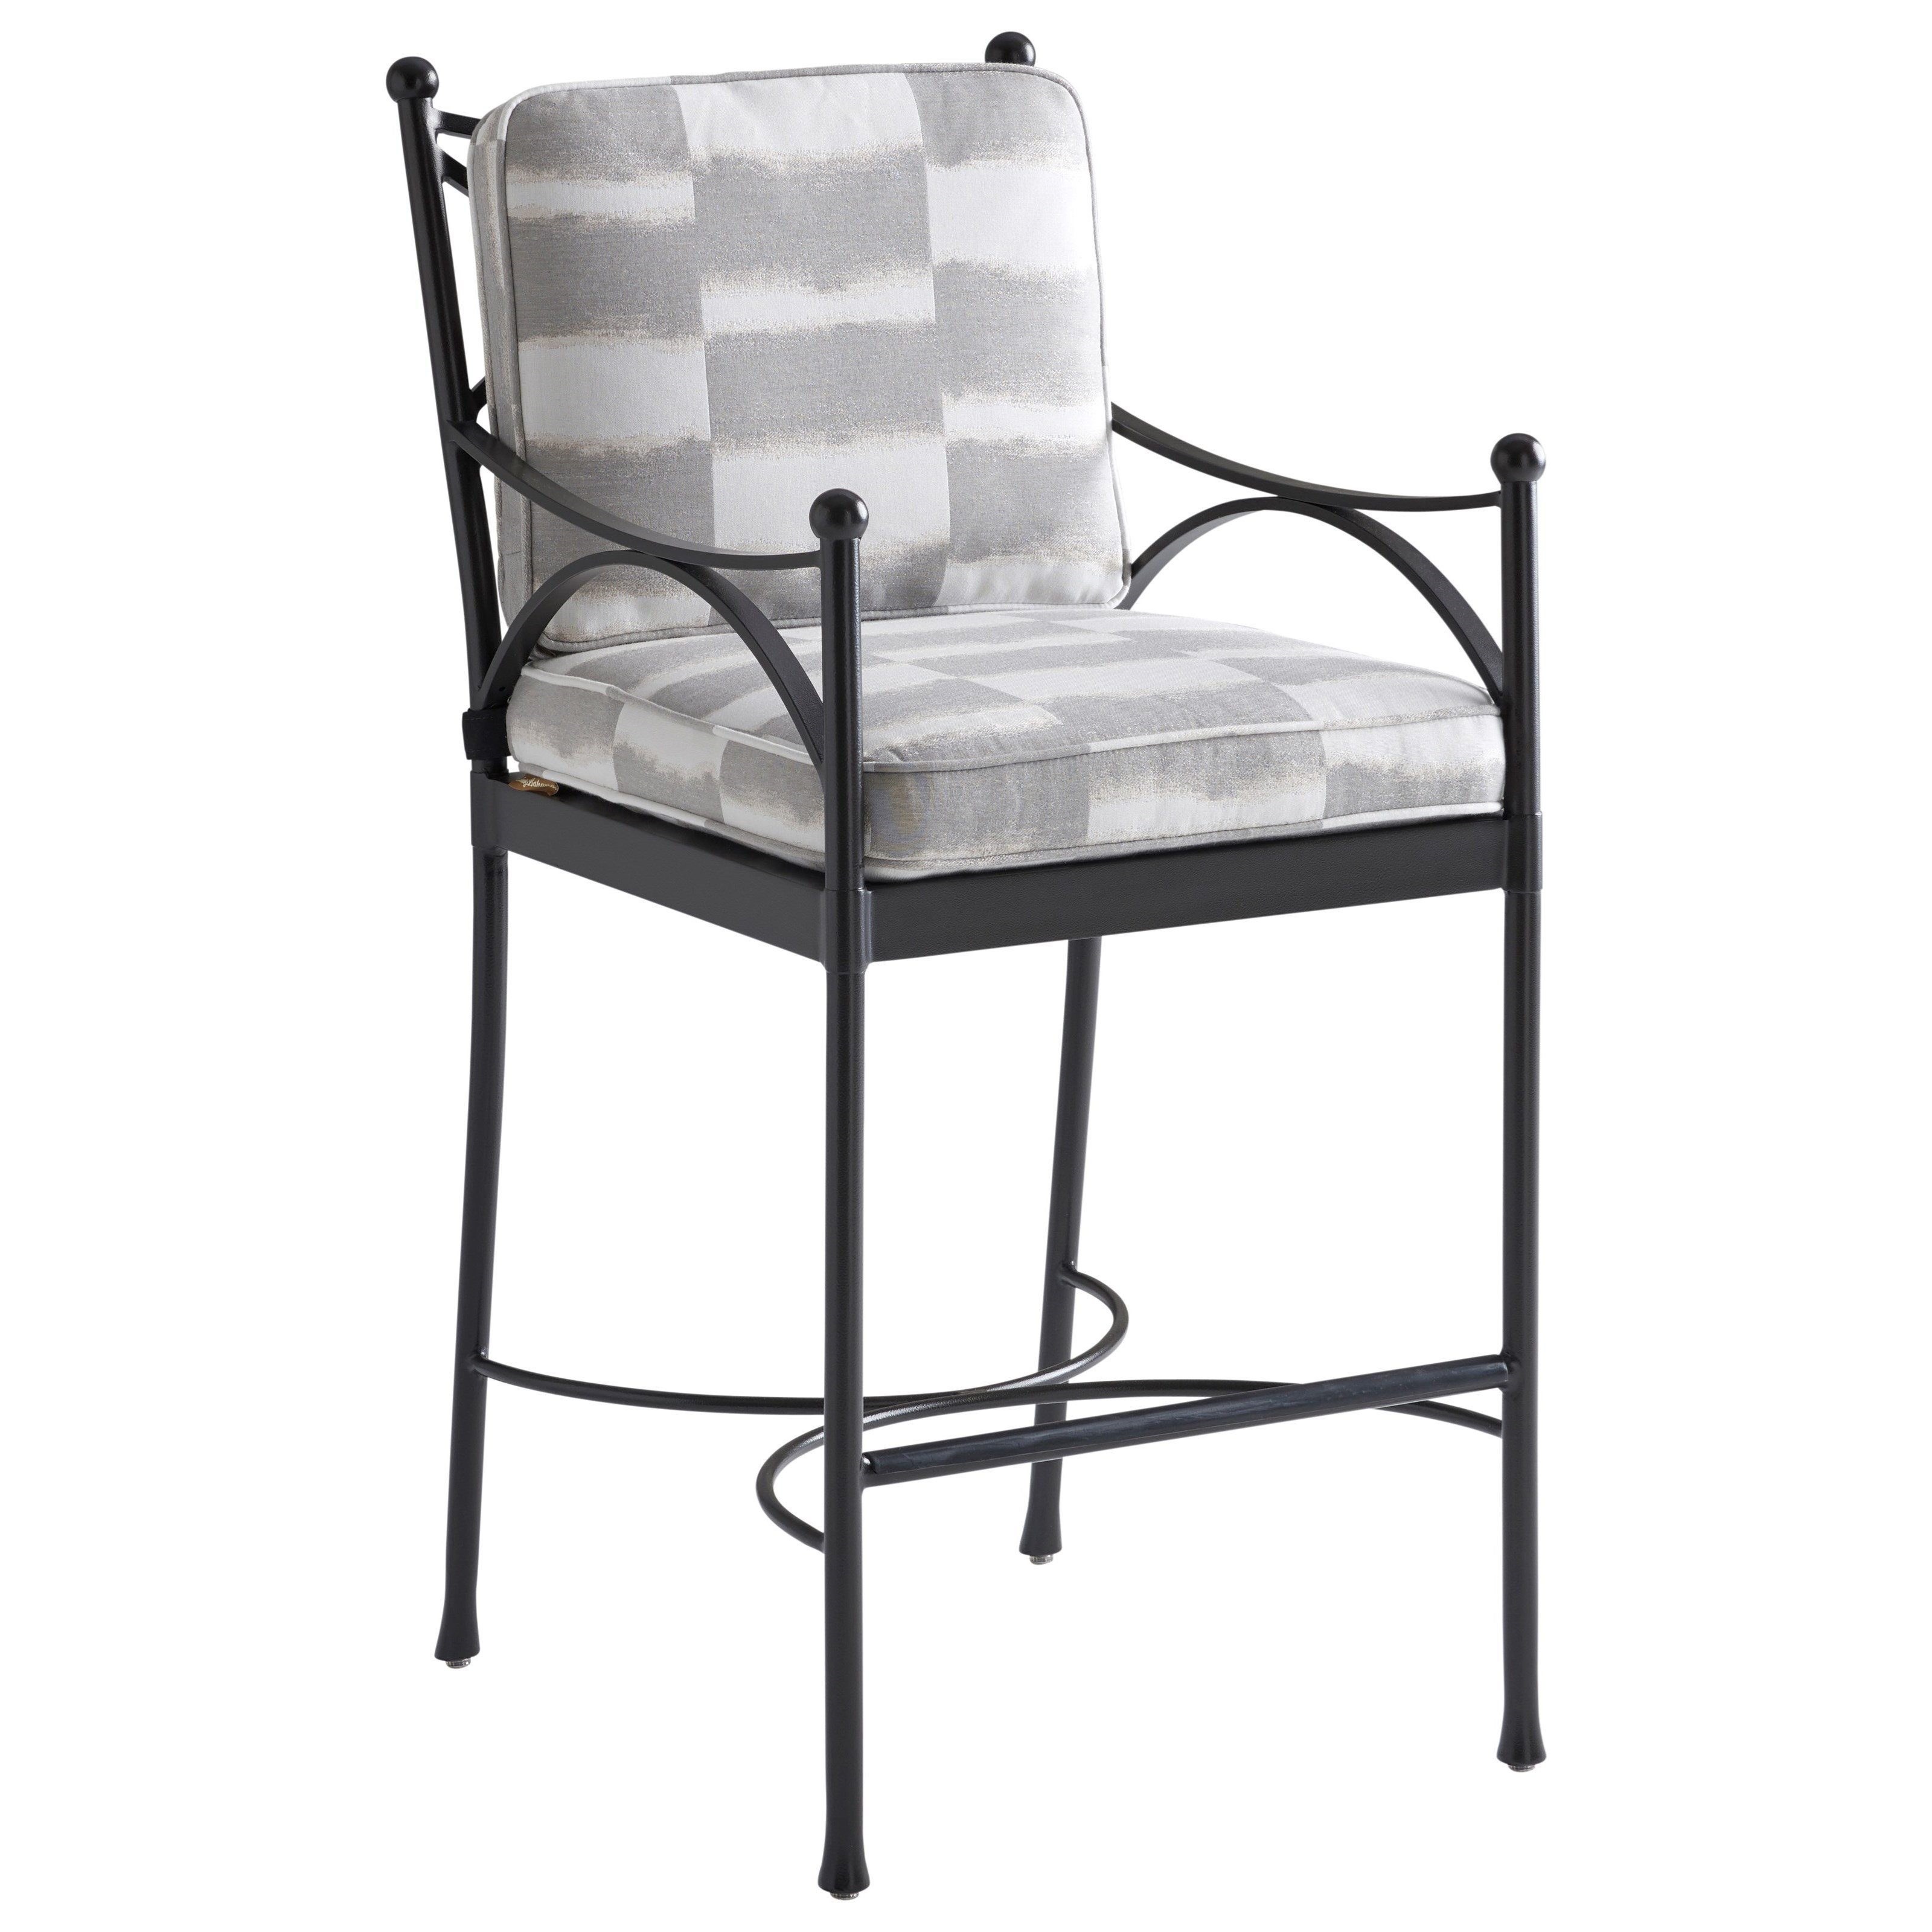 Pavlova Outdoor Bar Stool by Tommy Bahama Outdoor Living at Baer's Furniture